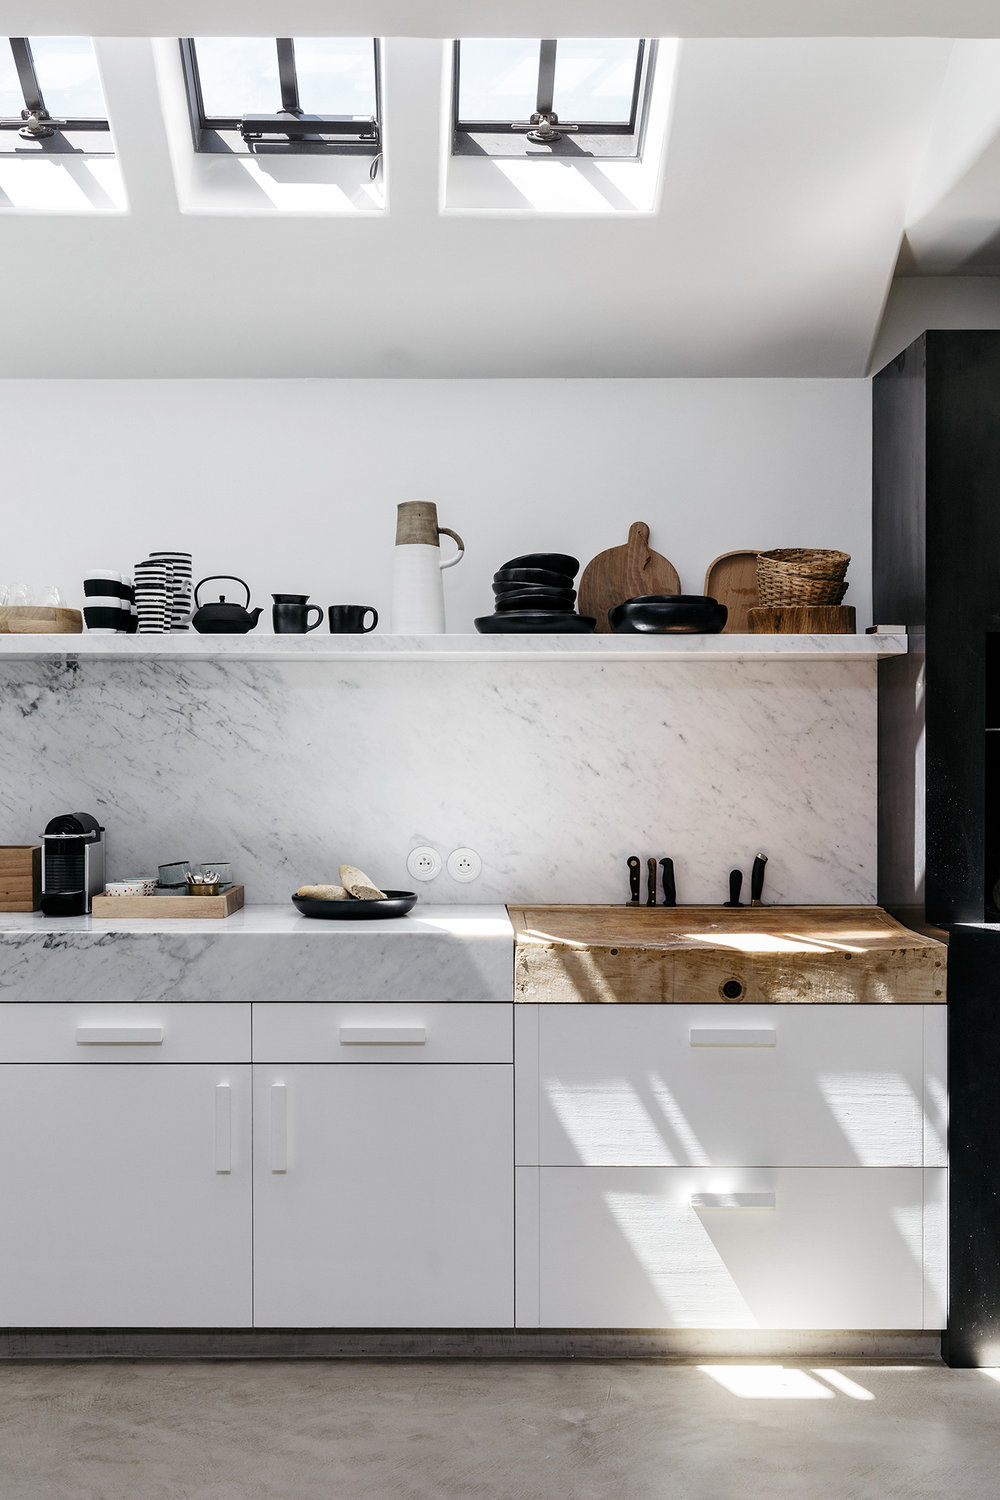 kitchen-with-skylights-wood-chopping-board-thick-marble-countertop-and-clean-minimal-style-coco-kelley-scandinavian-vacation-home-tour.jpg